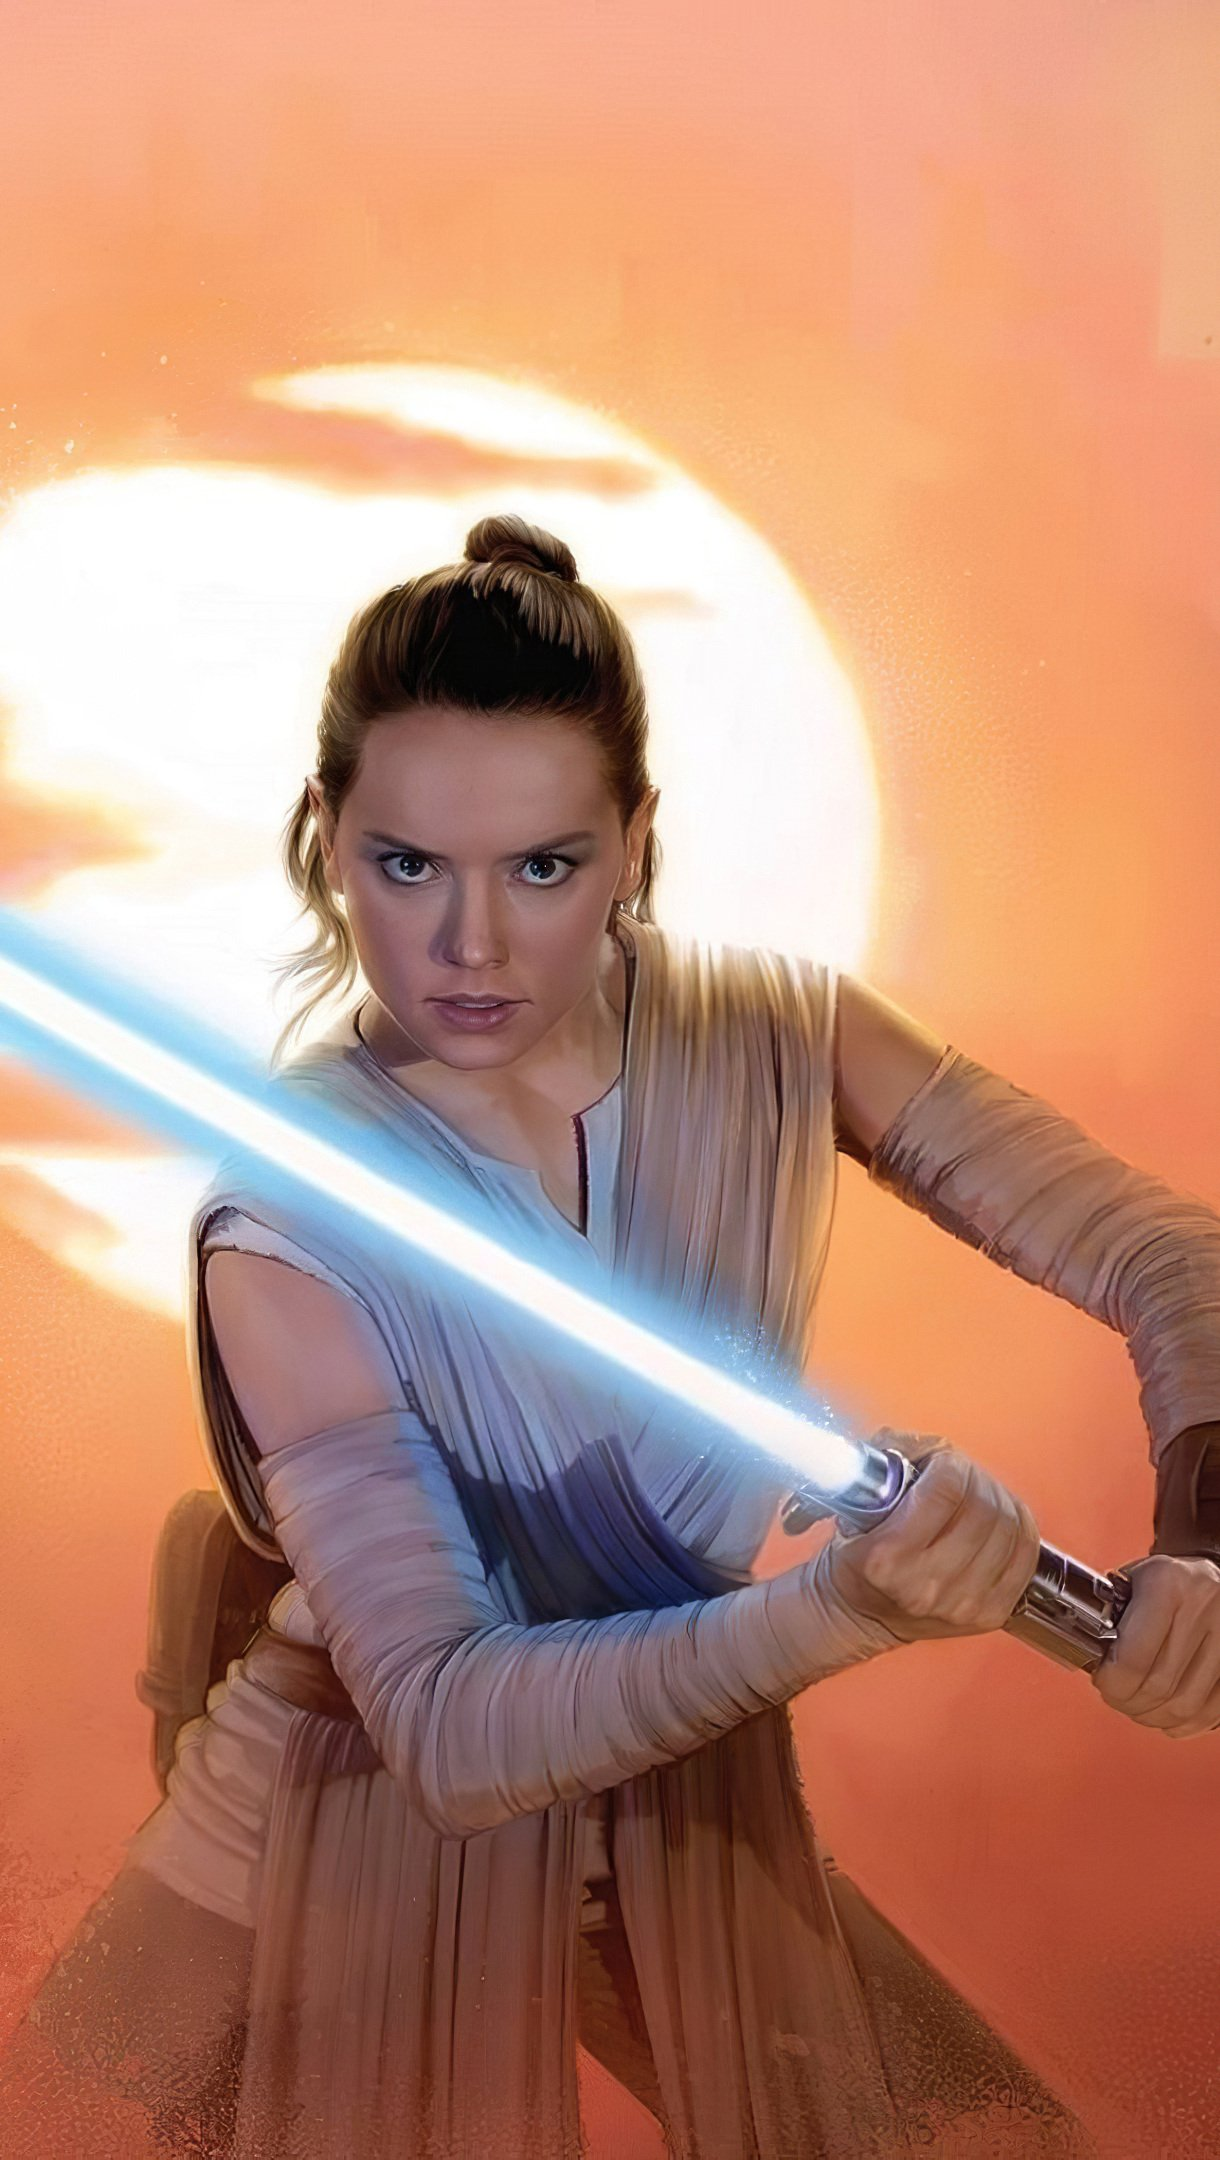 Wallpaper Rey with lightsaver from Star Wars The rise of the skywalker Vertical